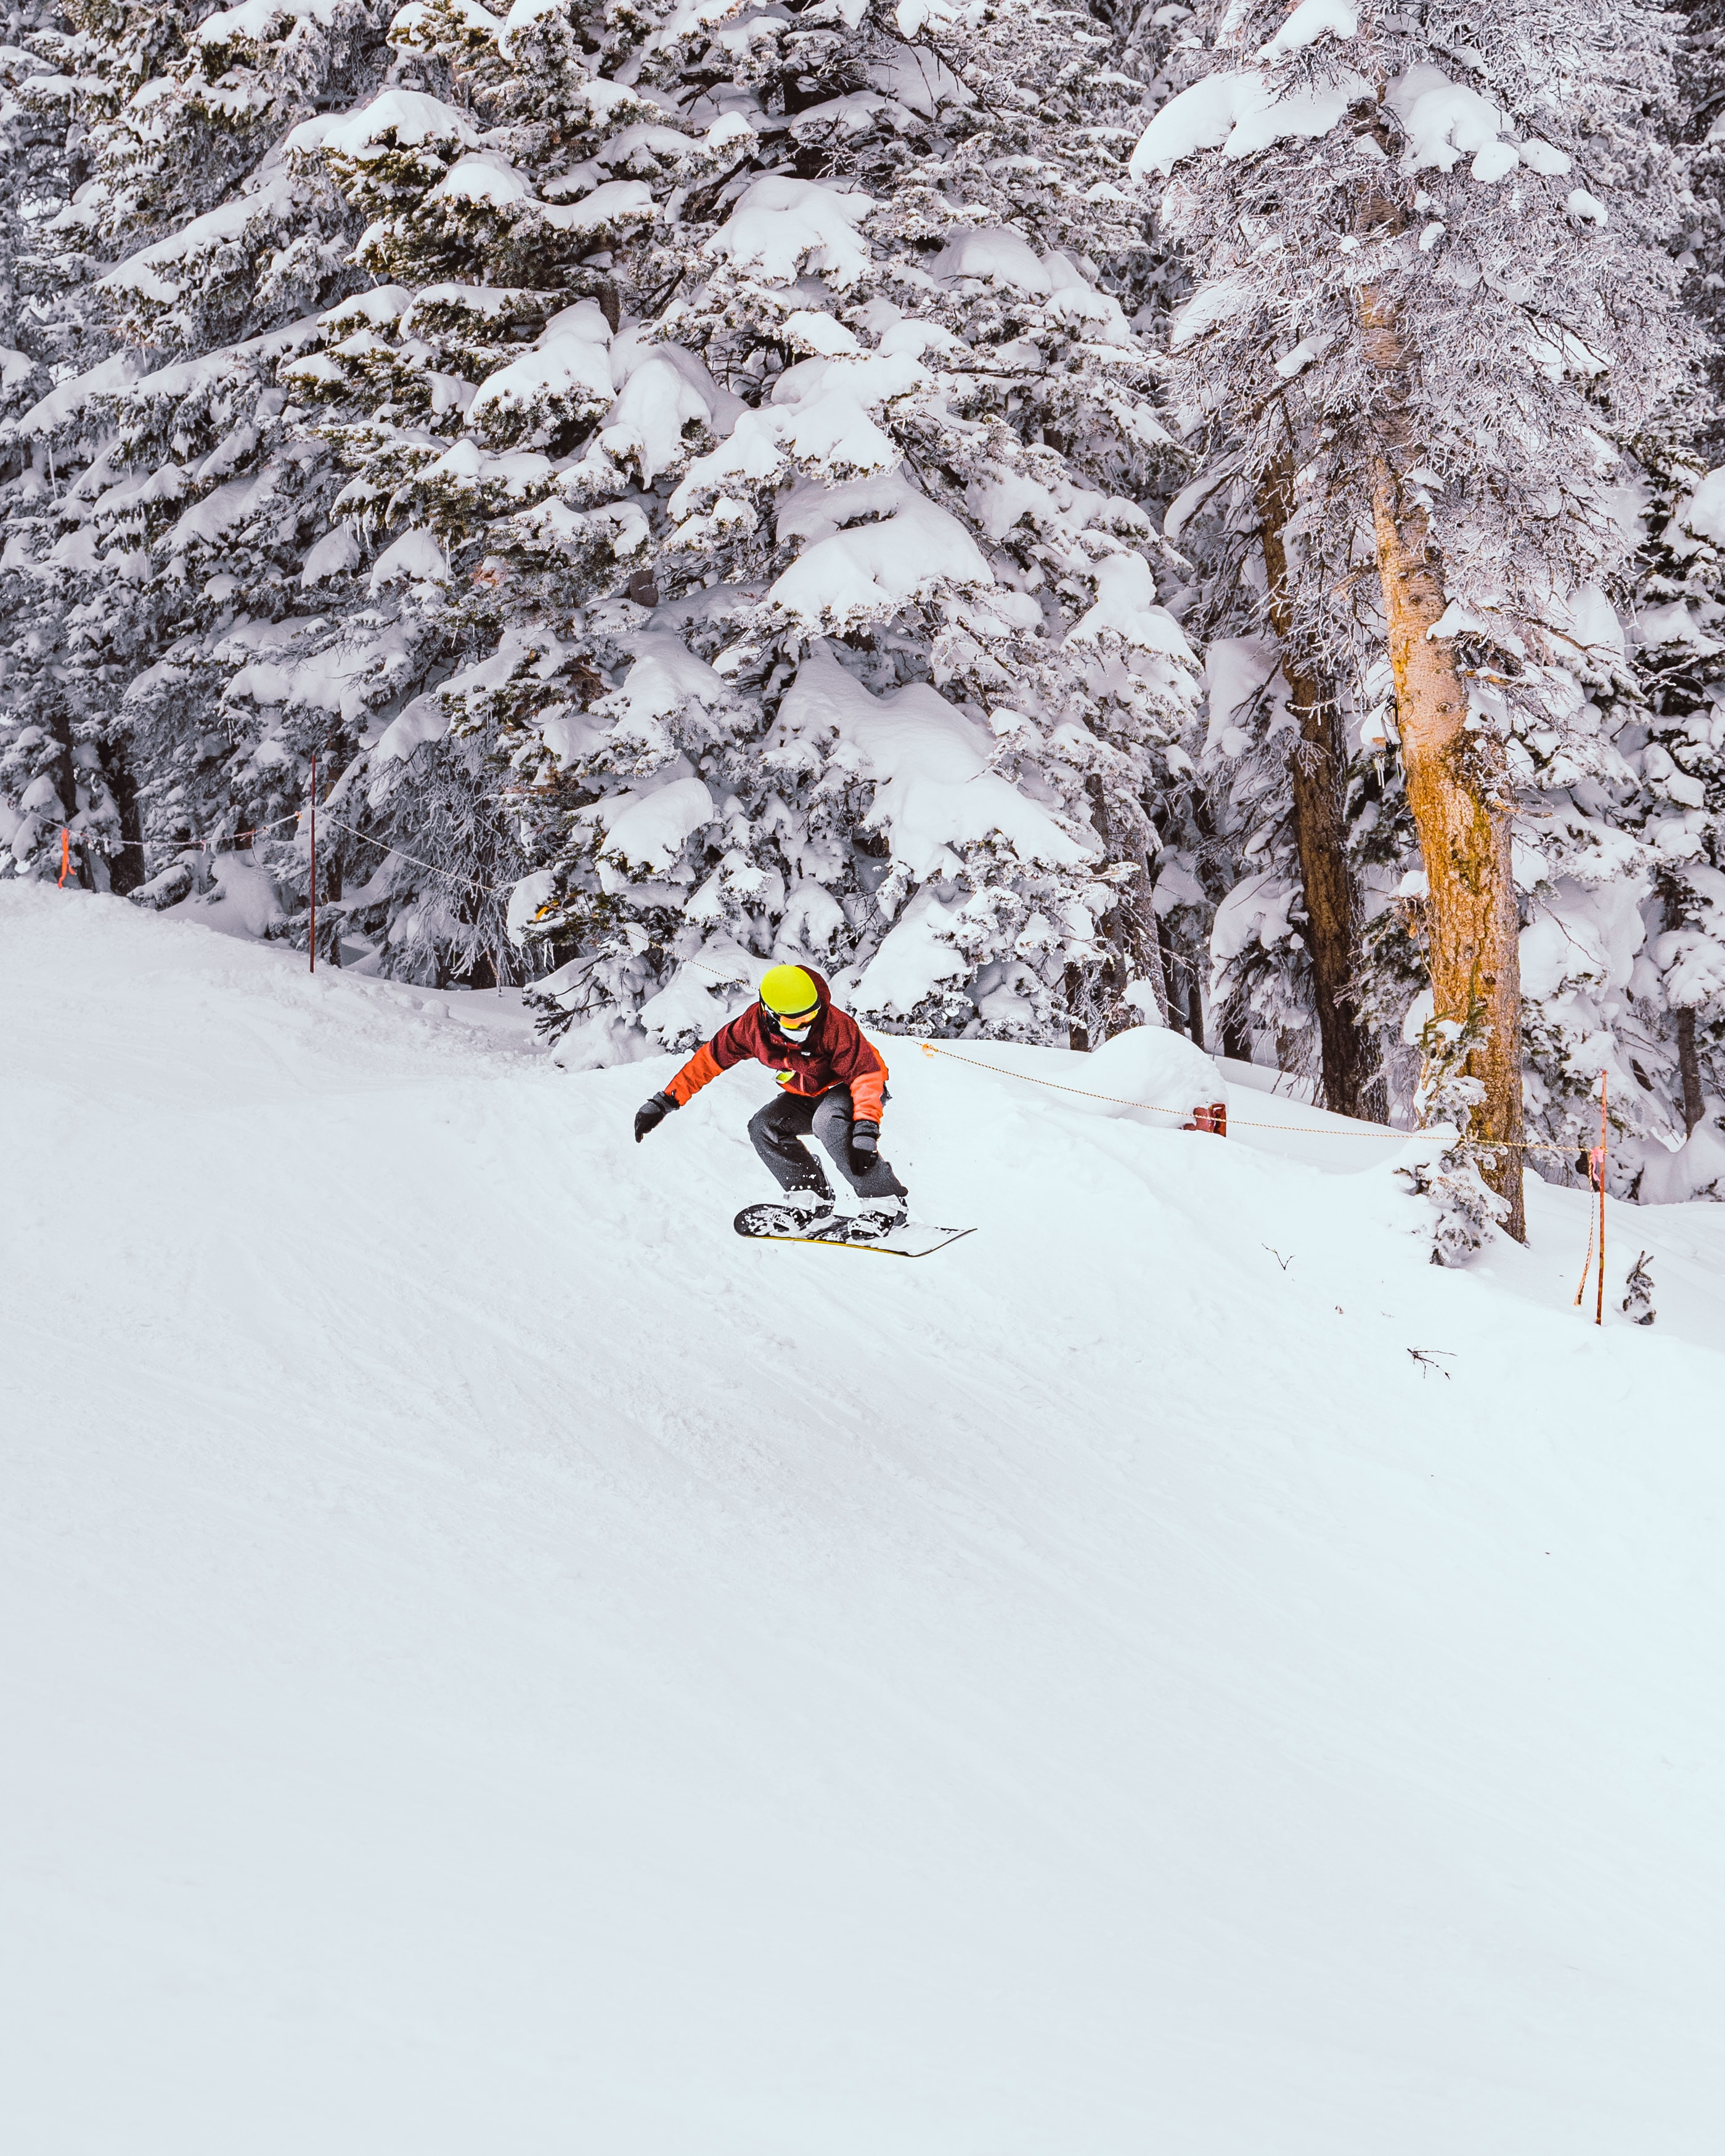 156418 download wallpaper Sports, Snowboard, Snowboarder, Bounce, Jump, Snow, Trees, Winter screensavers and pictures for free